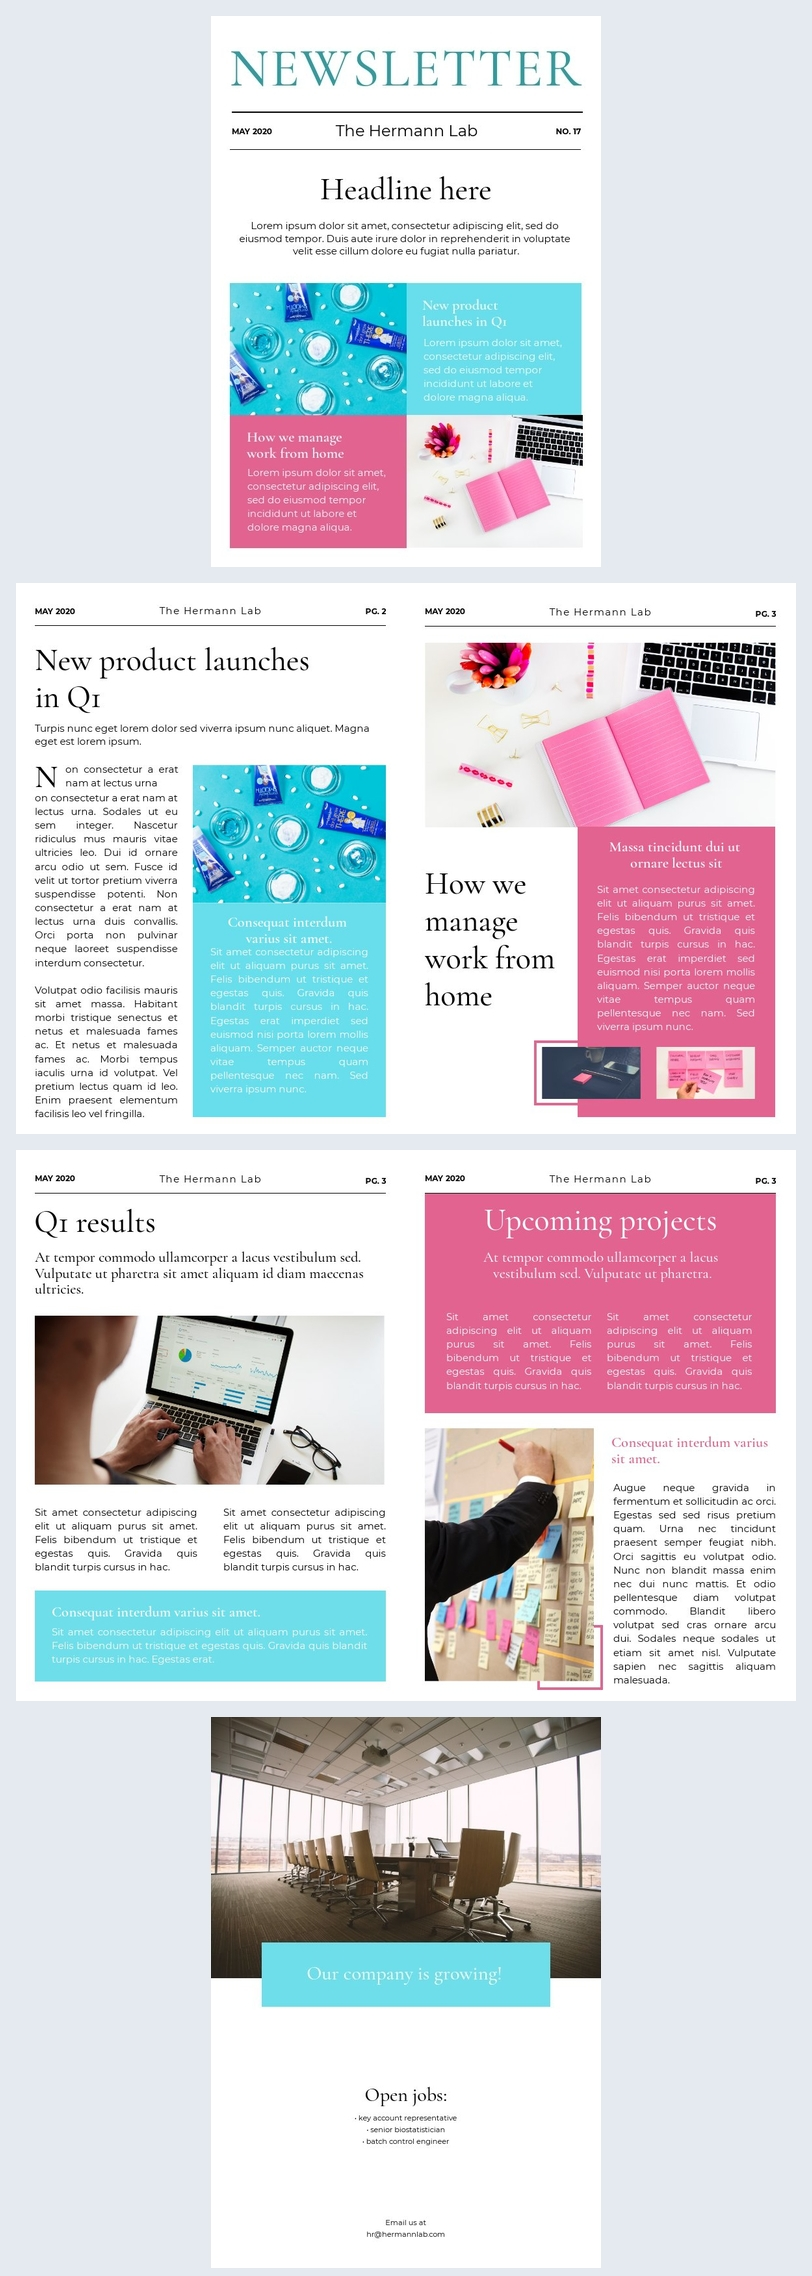 Company Newsletter Design Example